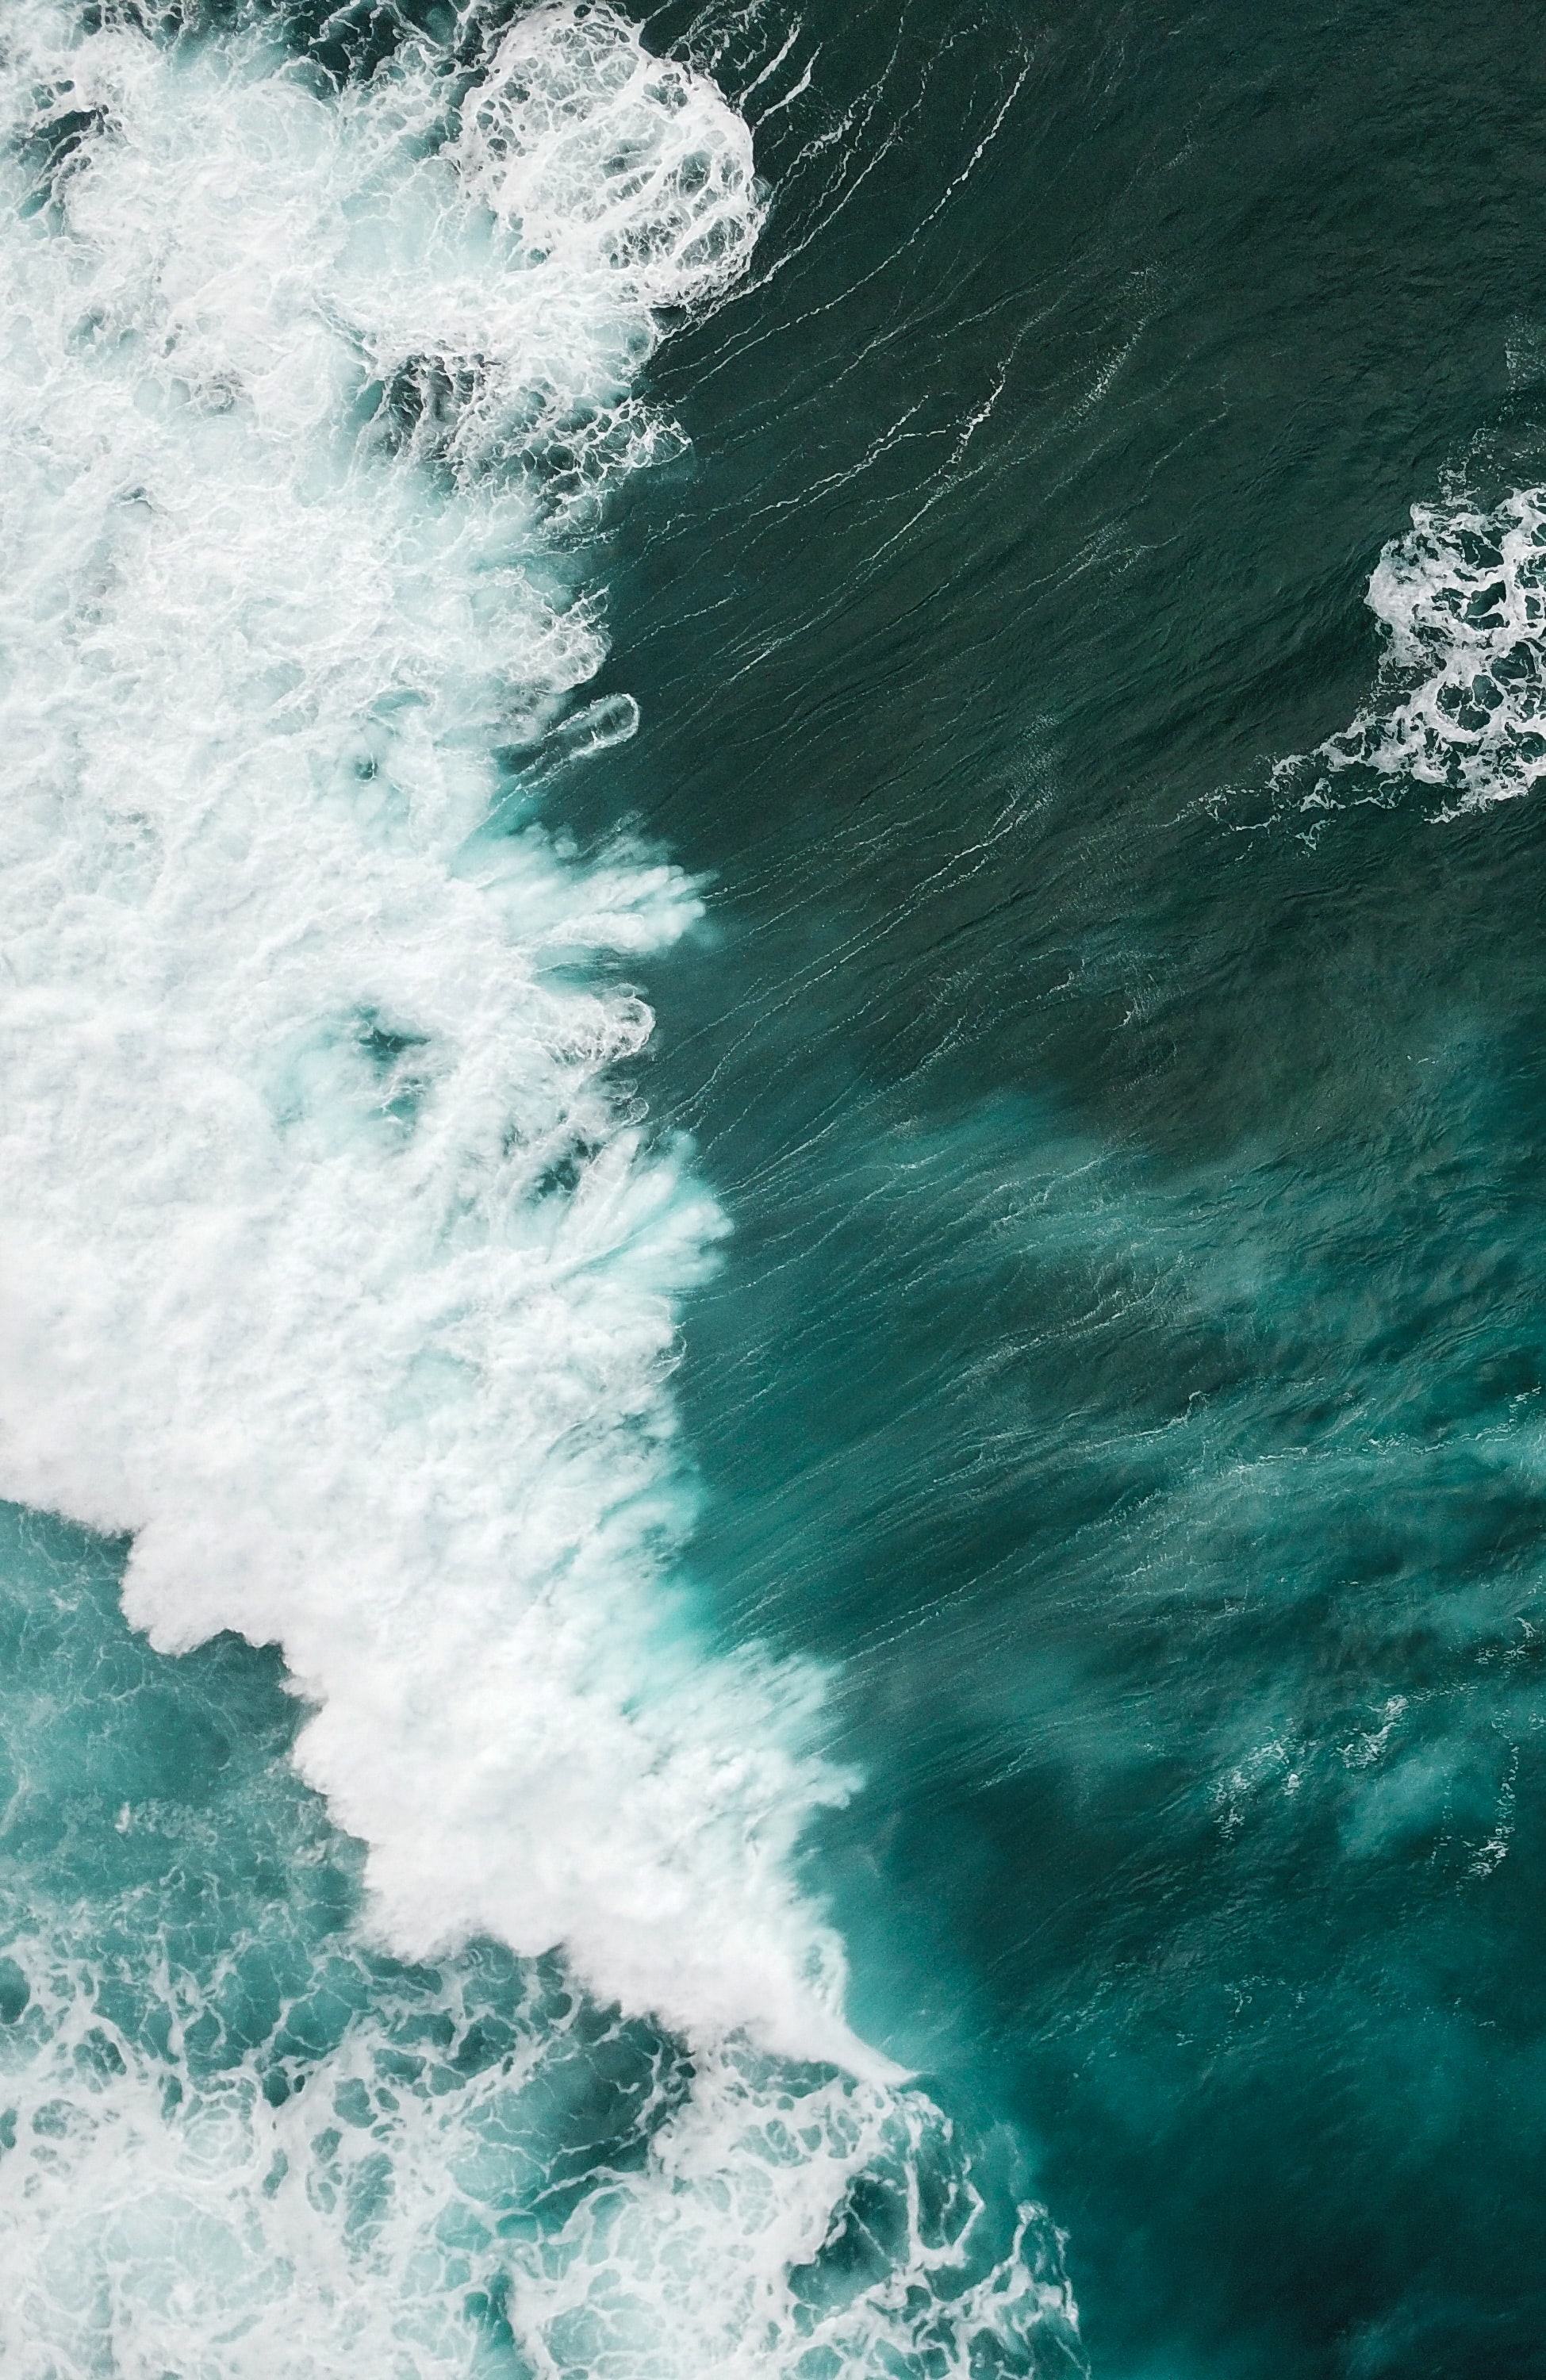 Wave Wallpapers Free Hd Download 500 Hq Unsplash